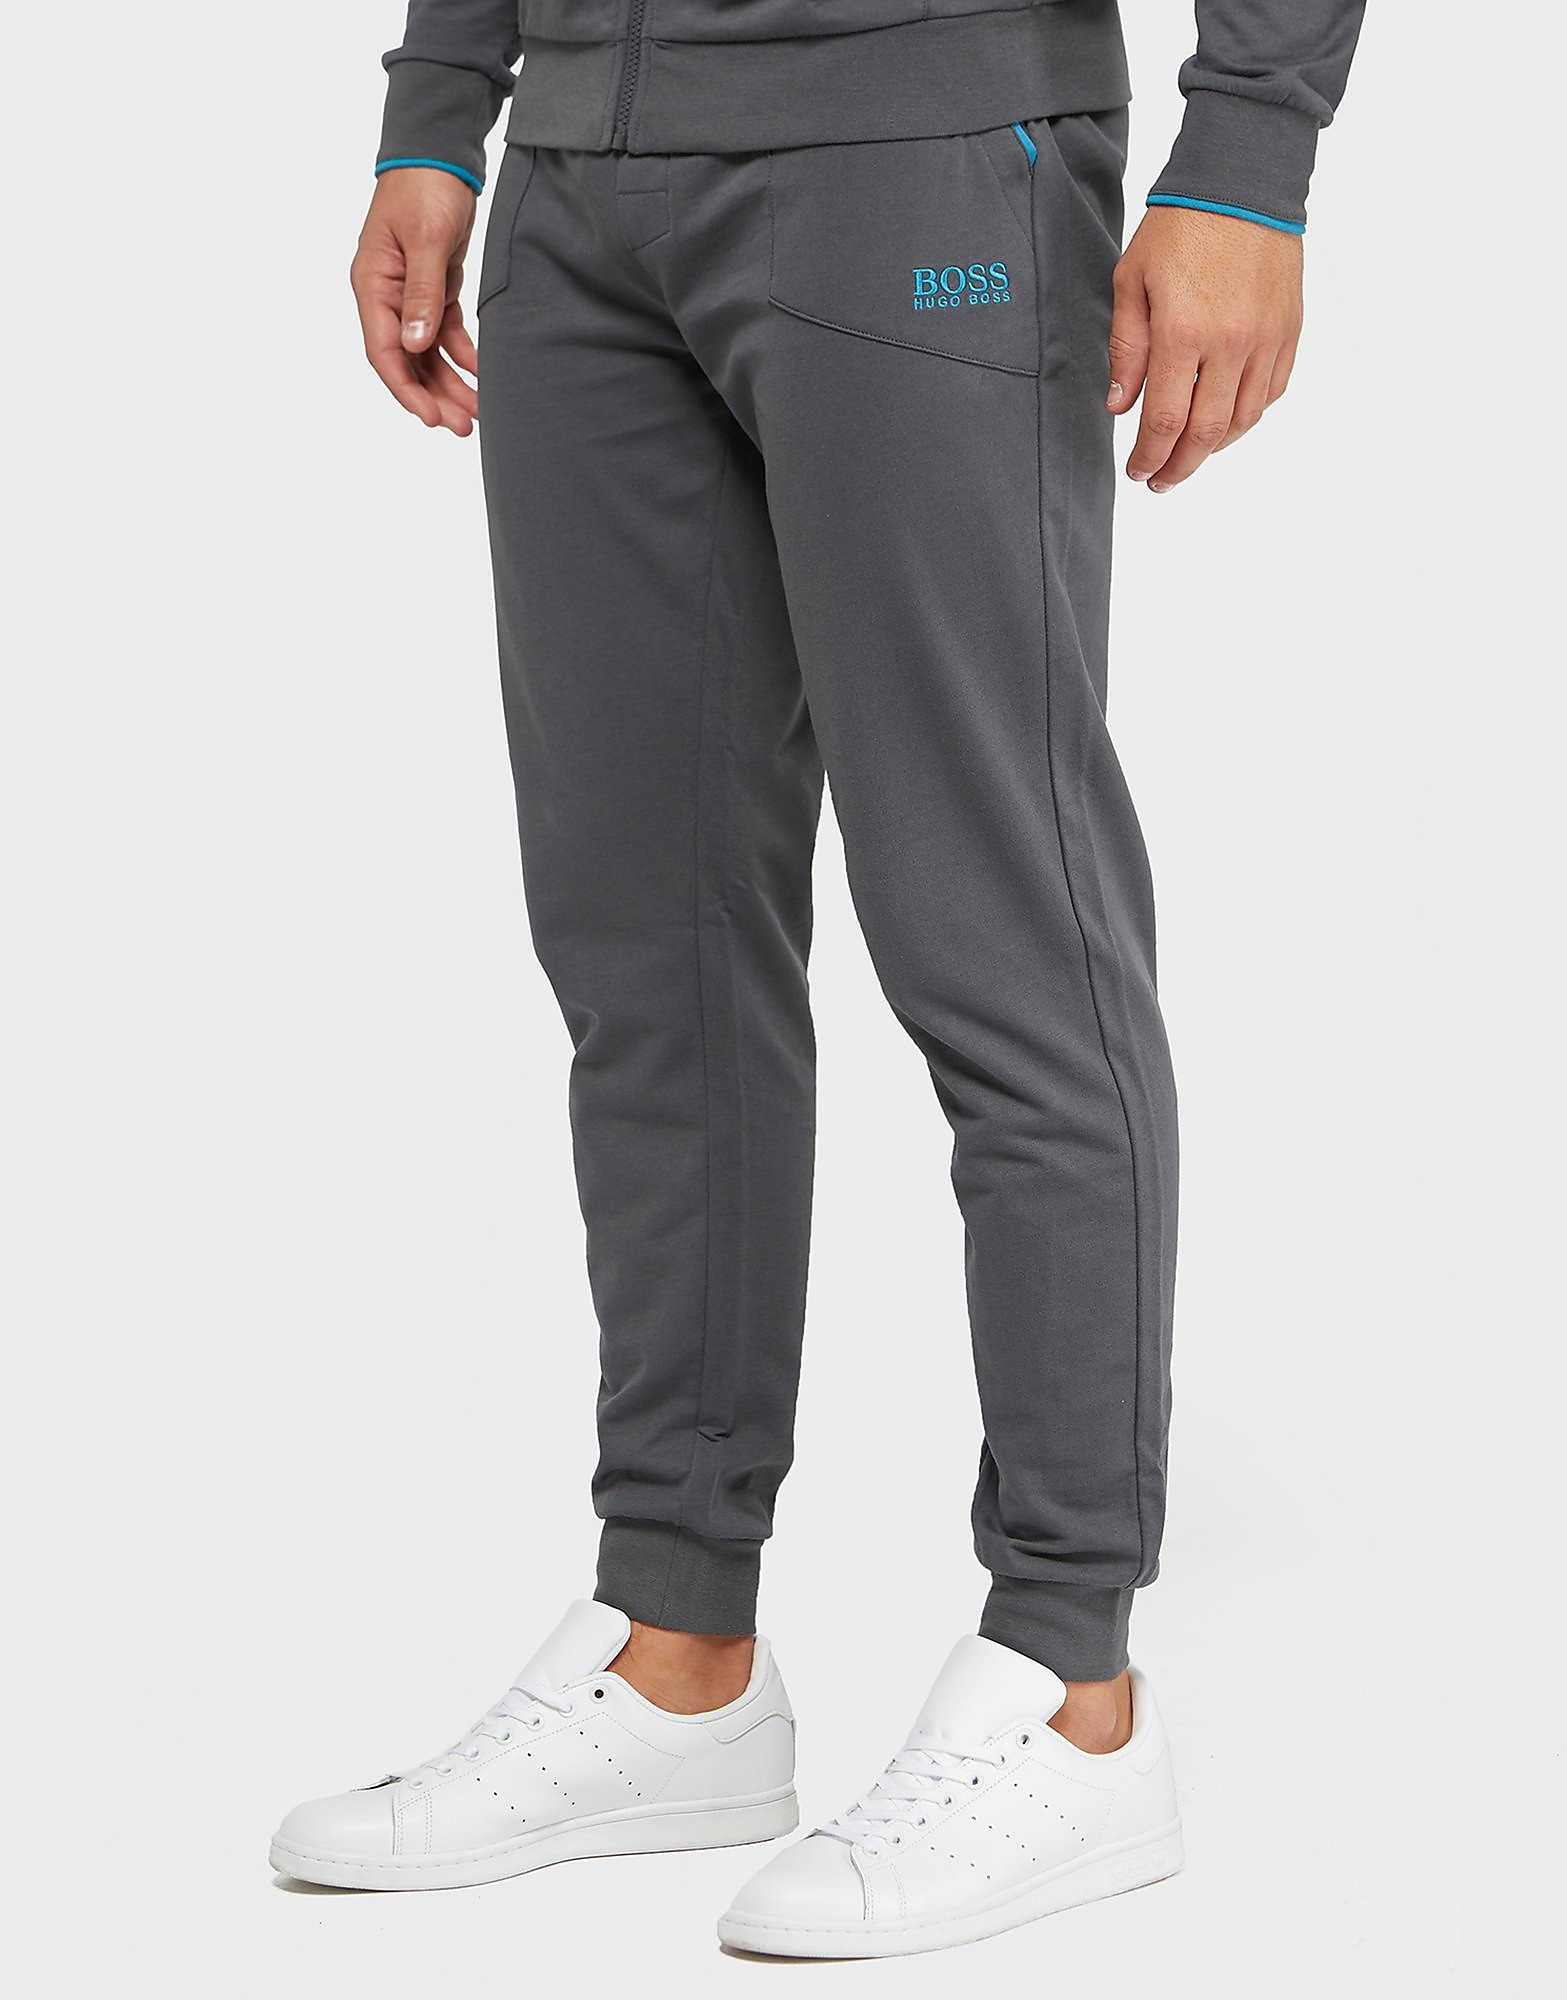 BOSS Cuffed Track Pants